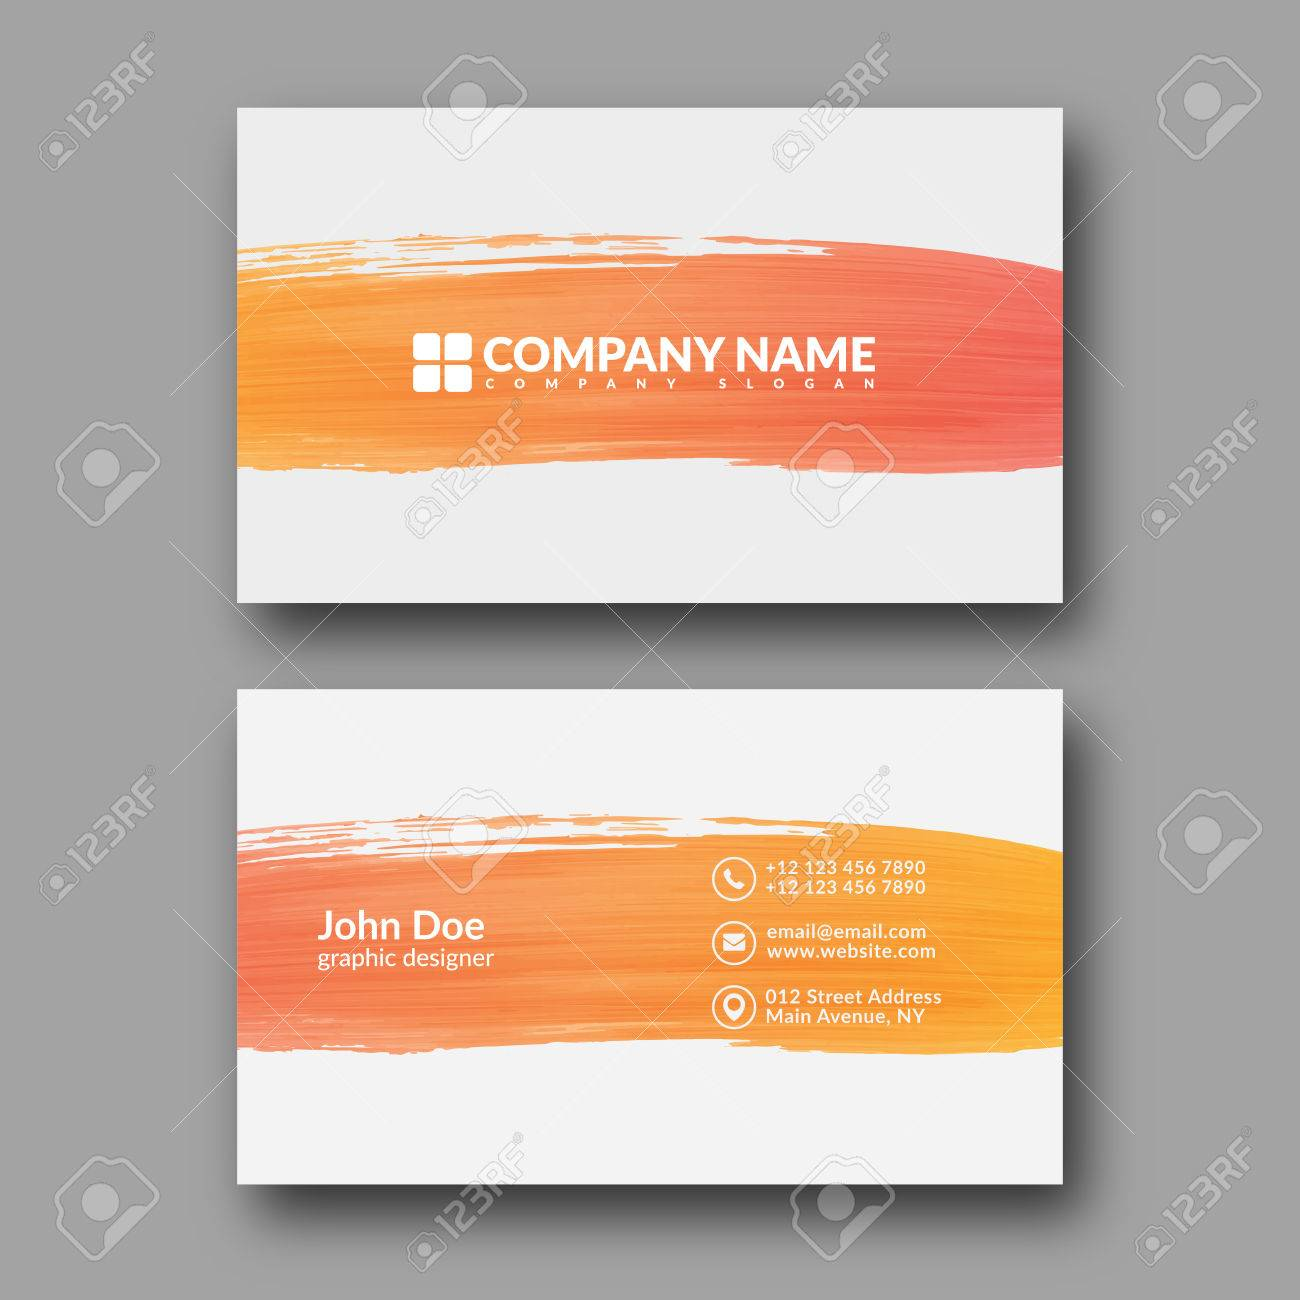 Abstract paint brush business card template royalty free cliparts abstract paint brush business card template stock vector 67763036 wajeb Image collections